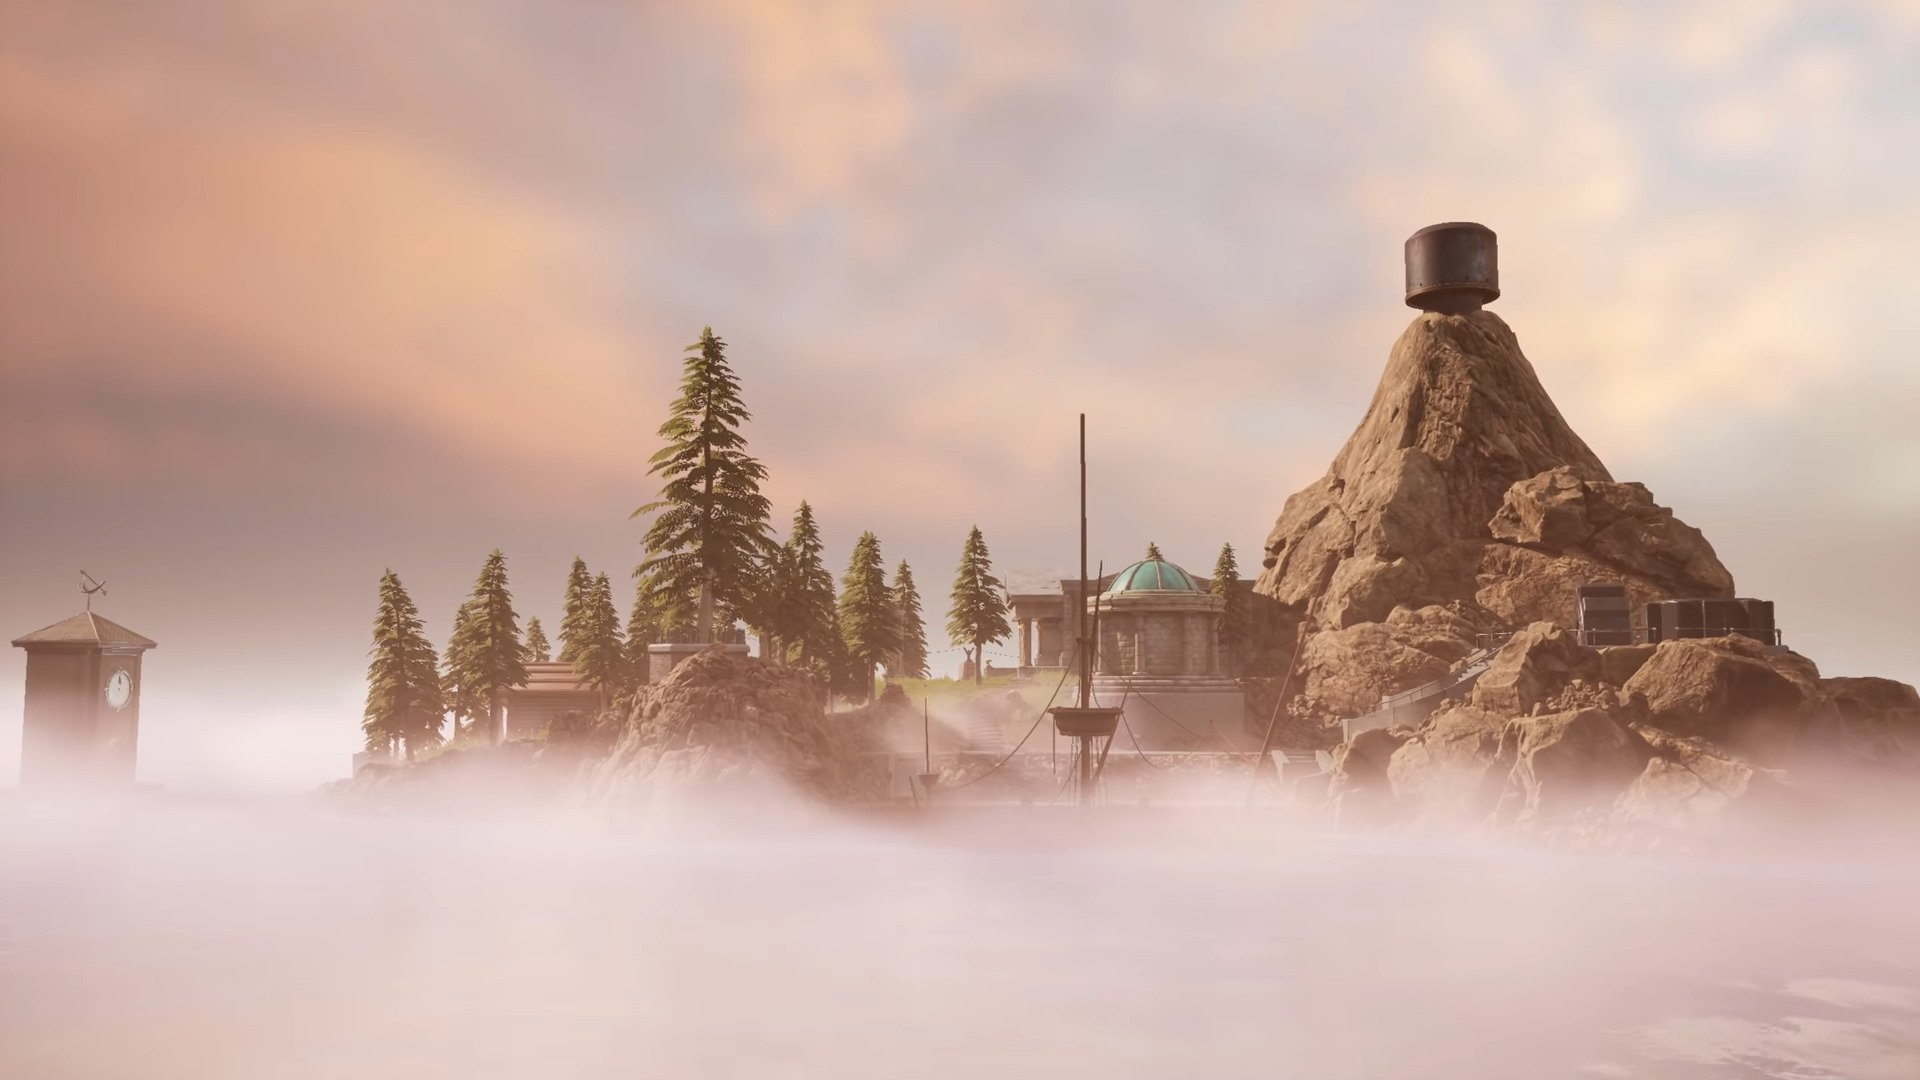 The Legendary Title Myst Is Coming Back Reimagined And With Optional VR Support